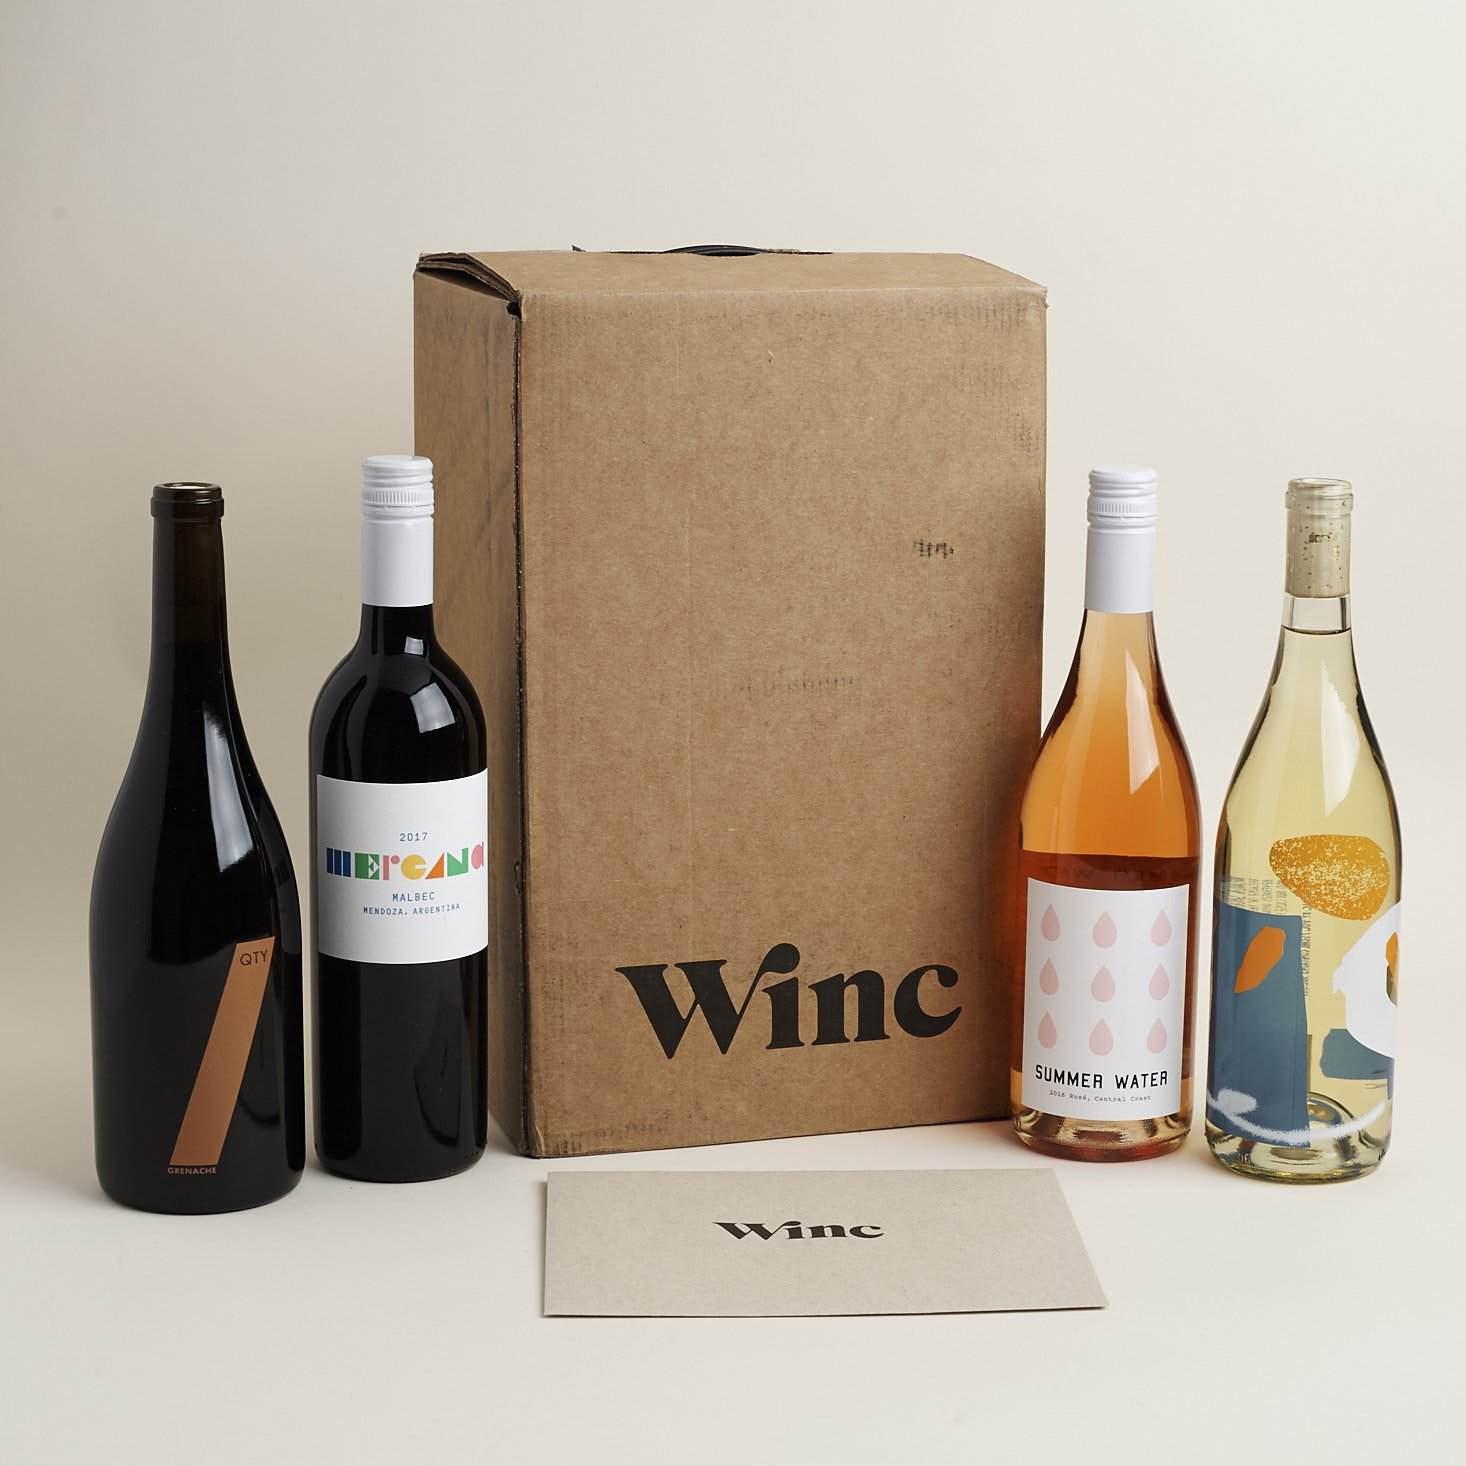 4 bottles of wine with winc box